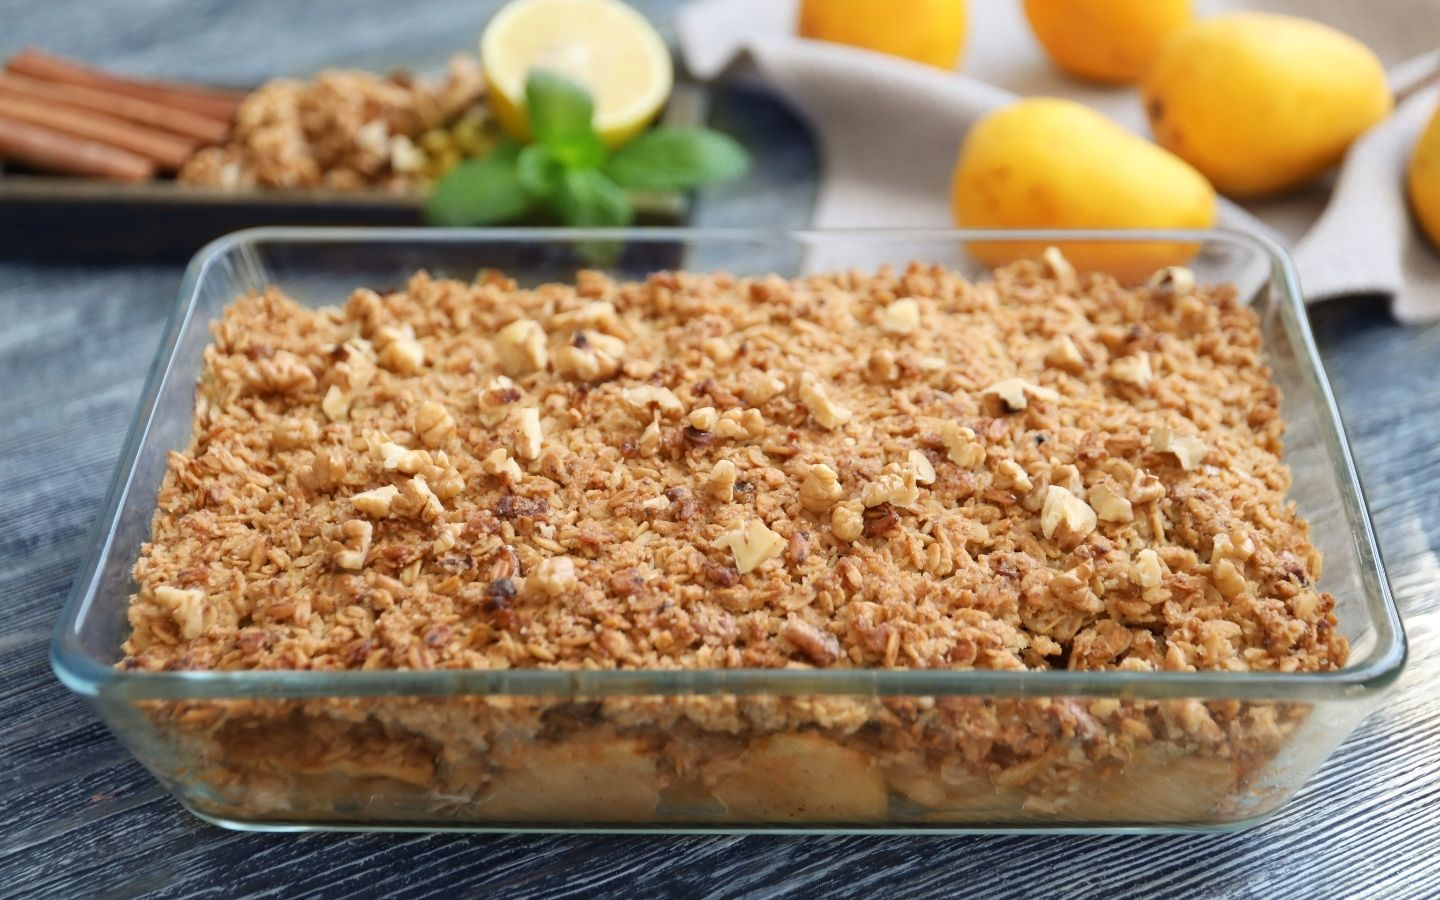 A glass baking dish filled with fresh baked apple crisp